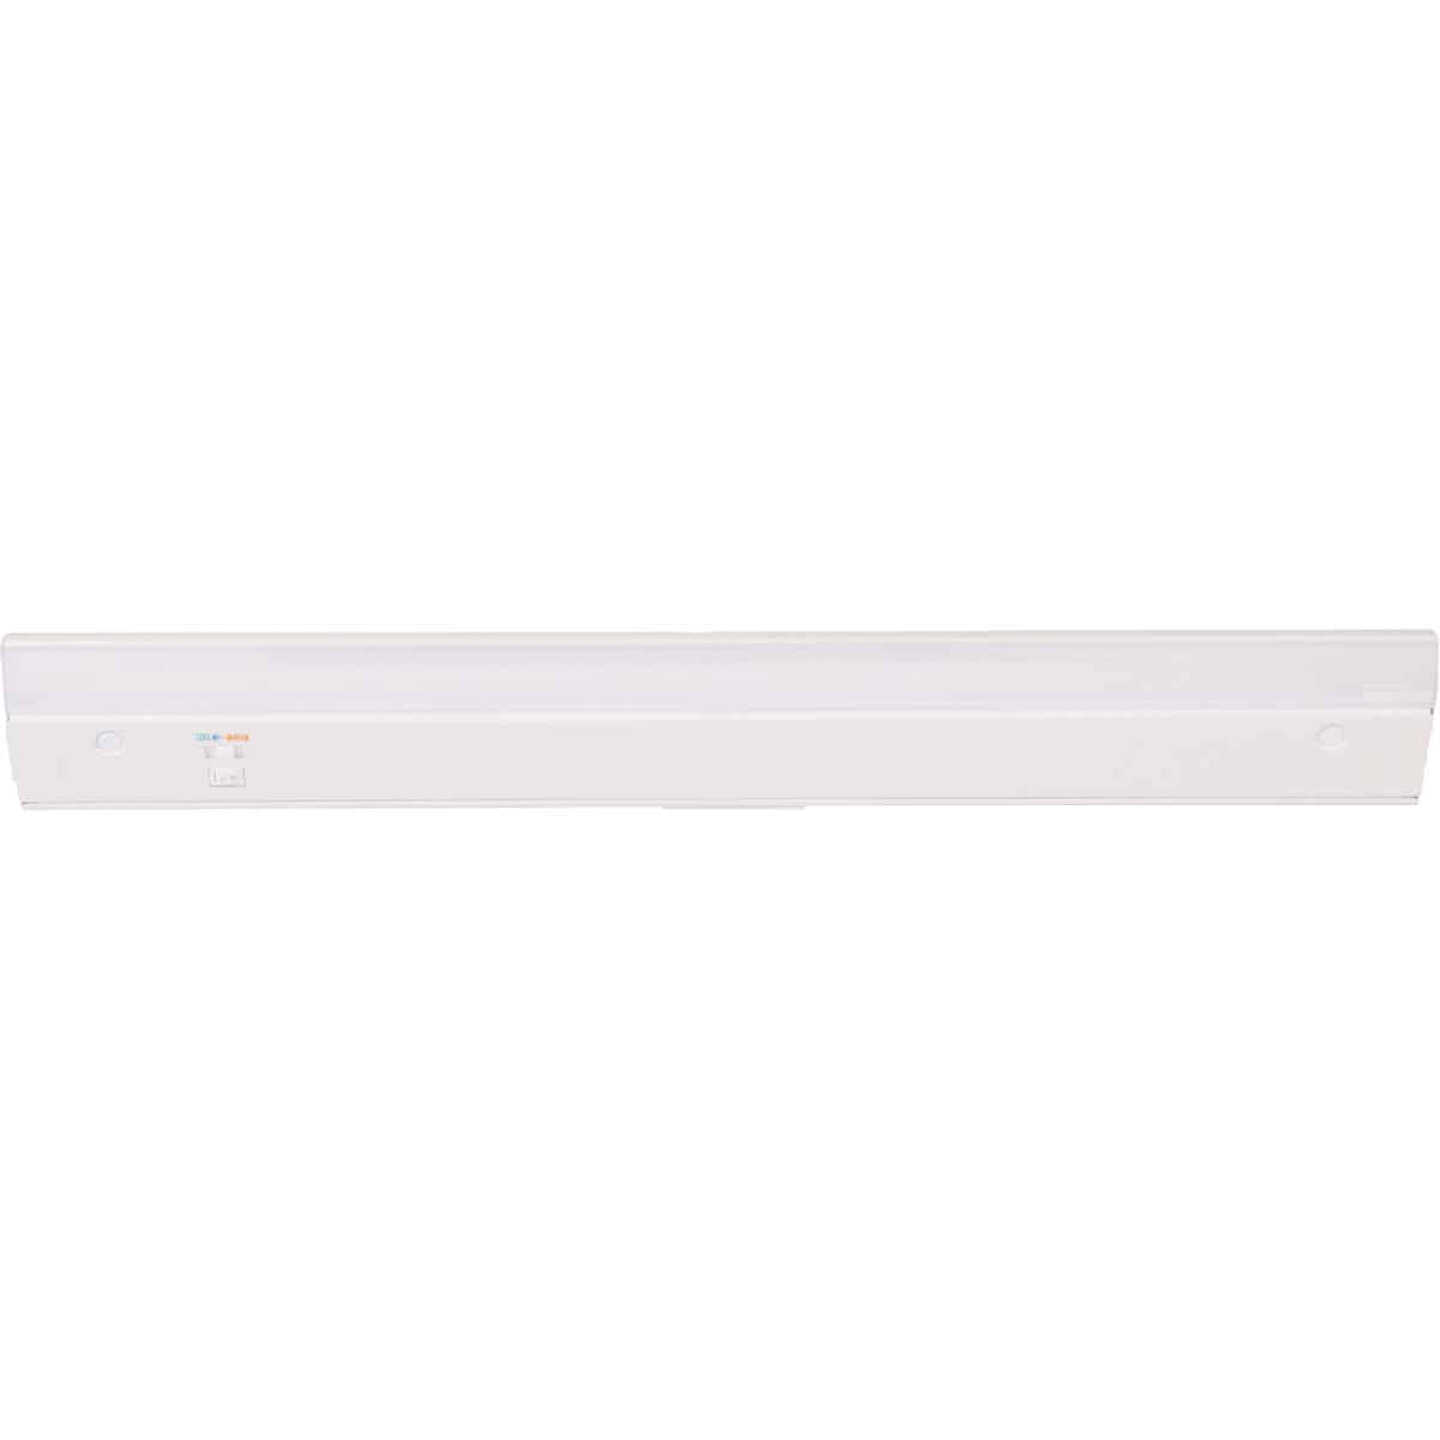 Good Earth Lighting 24 In. Direct Wire White LED Color Temperature Changing Under Cabinet Light Image 3